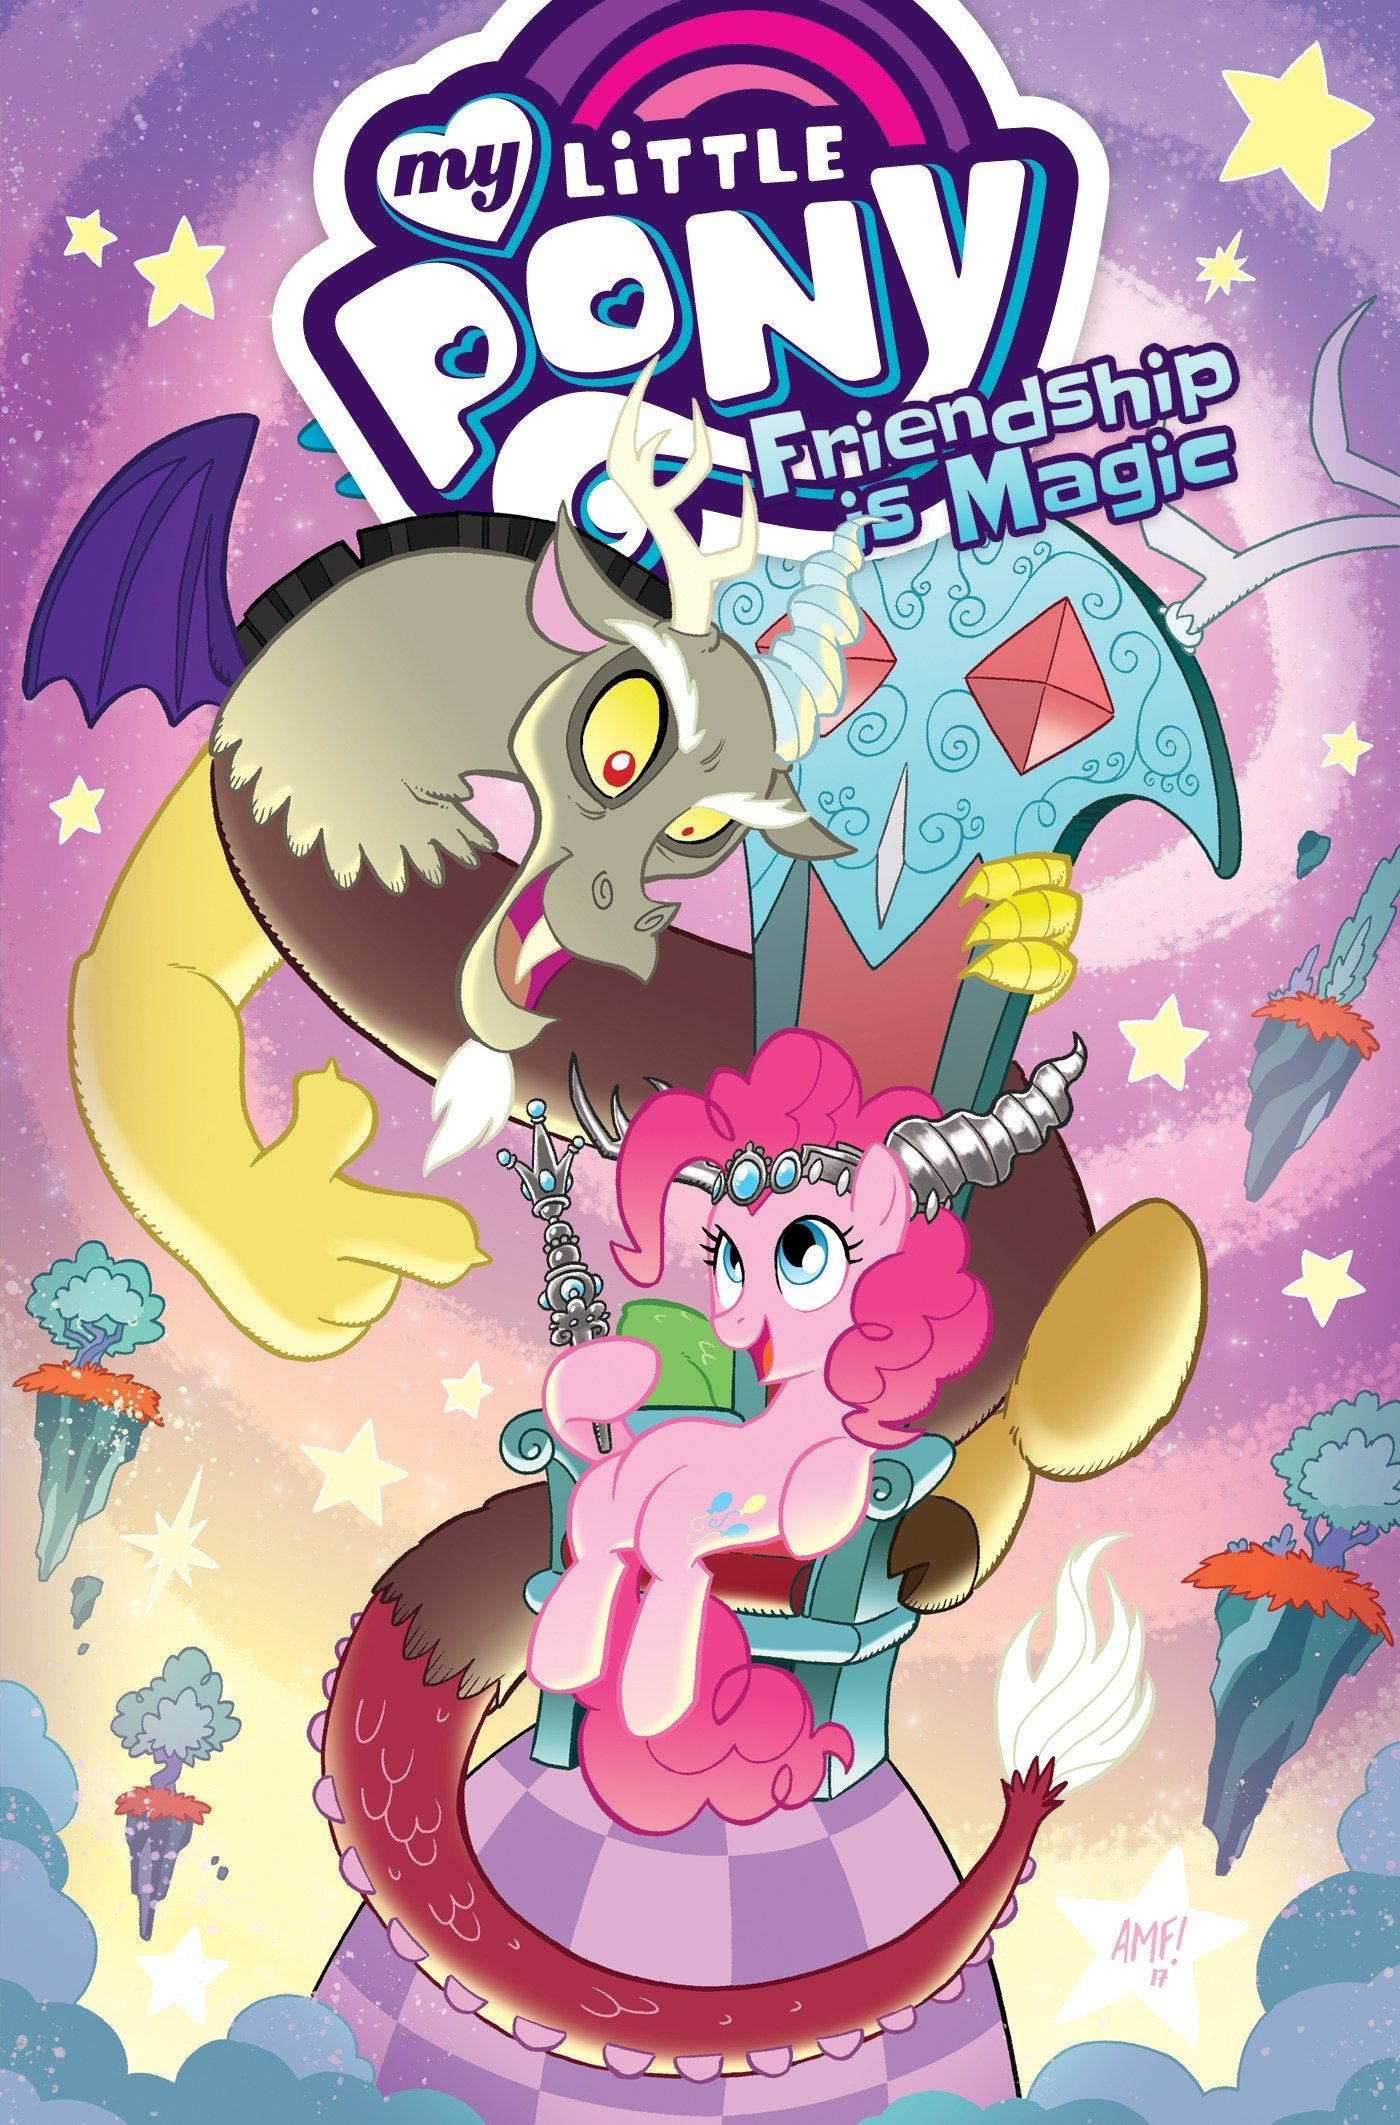 My Little Pony: Friendship is Magic Volume 13